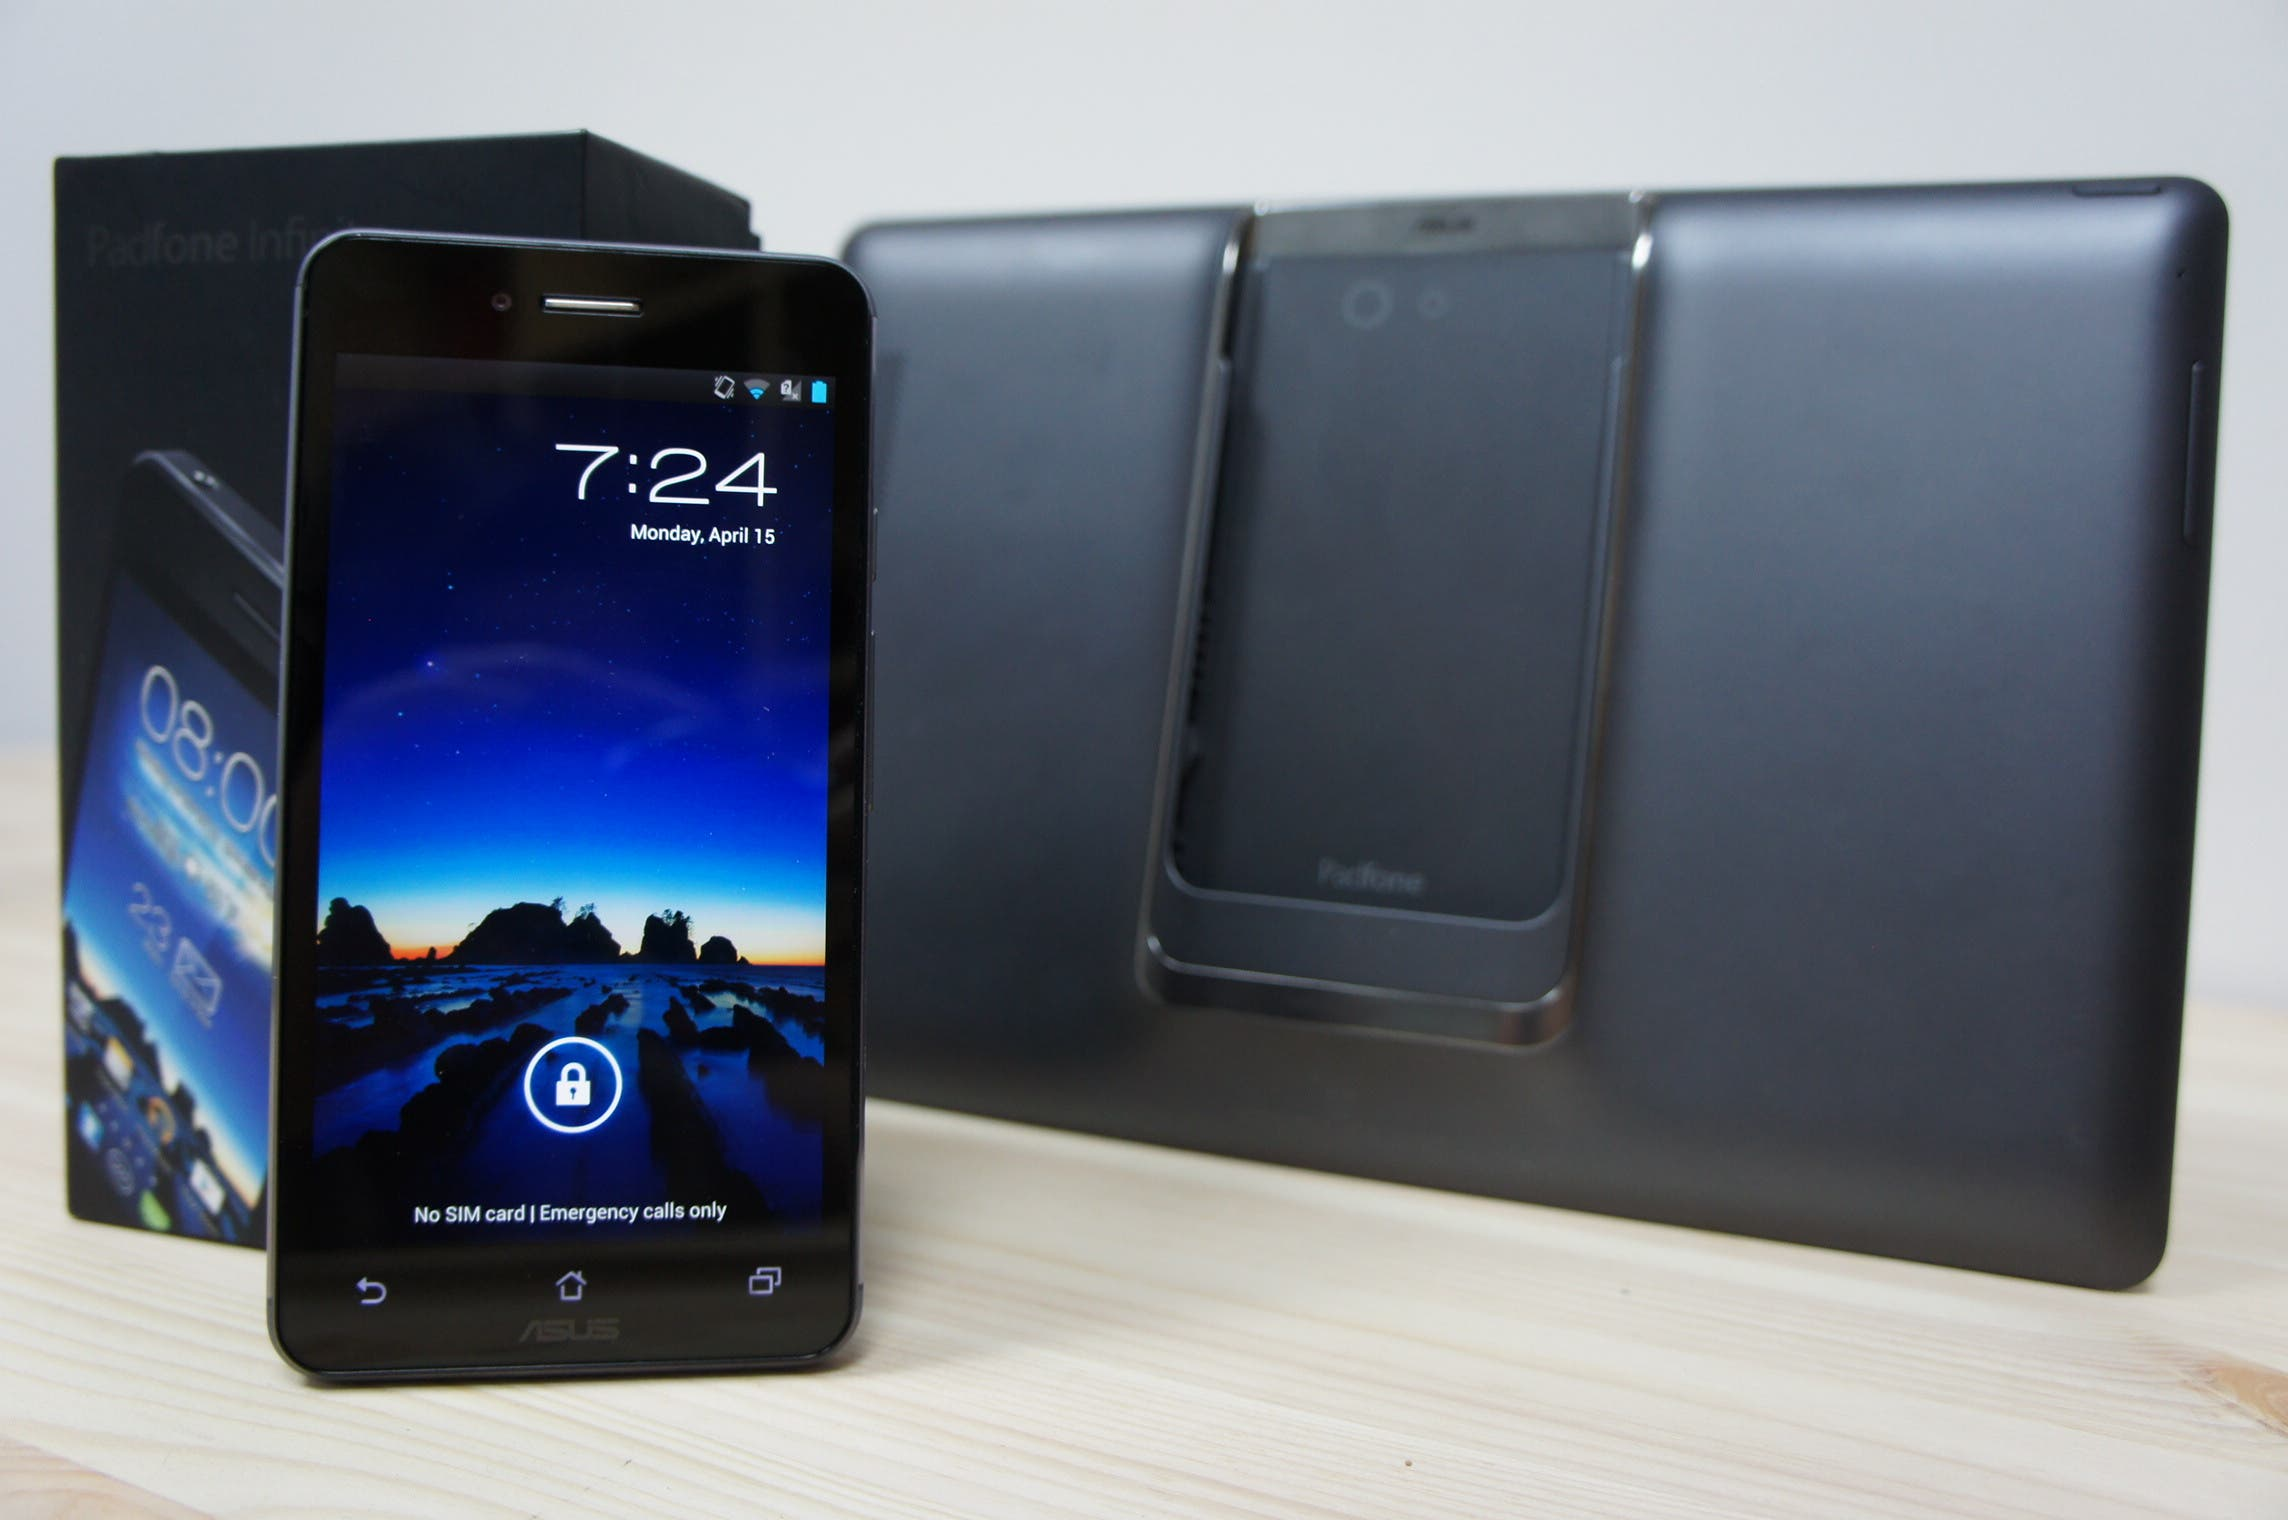 Video: ASUS Padfone Infinity mit Full-HD-Display, Snapdragon 600 Quad-Core & Tablet-Dock im Unboxing